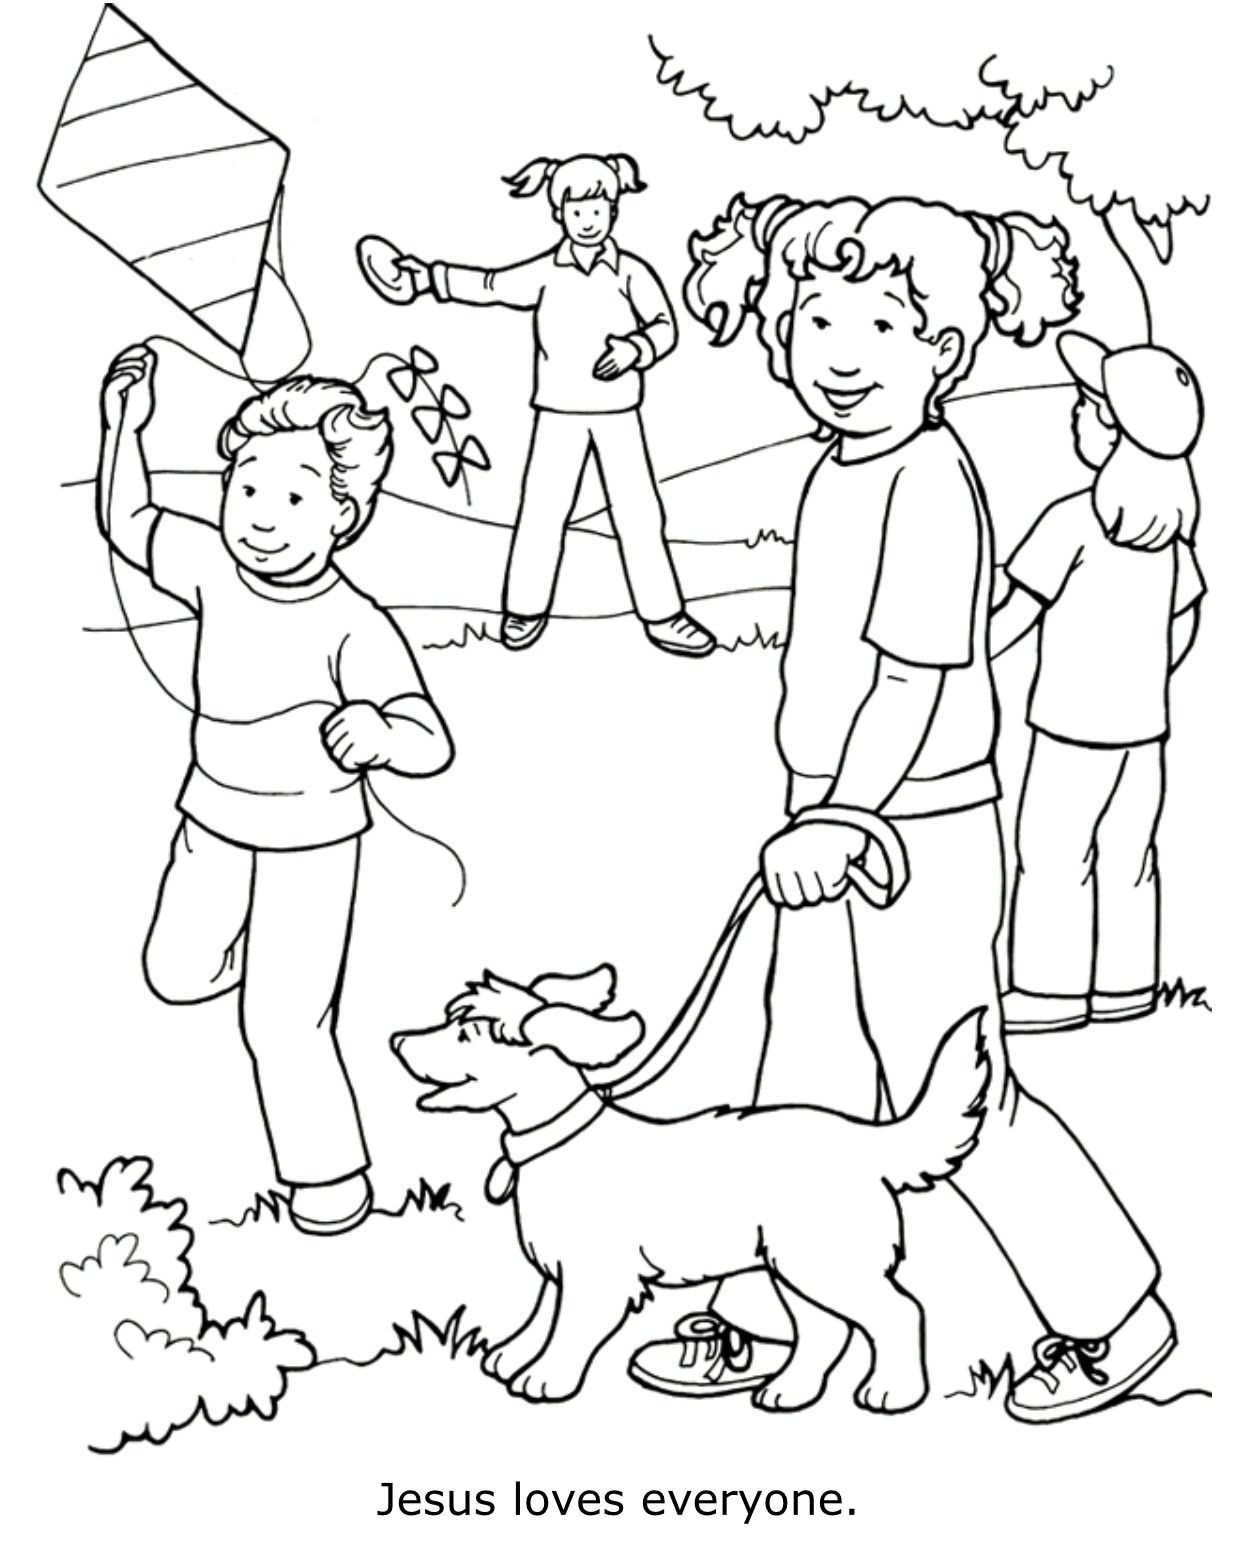 Jesus Loves Everyone Coloring Page Sunday School Coloring Pages